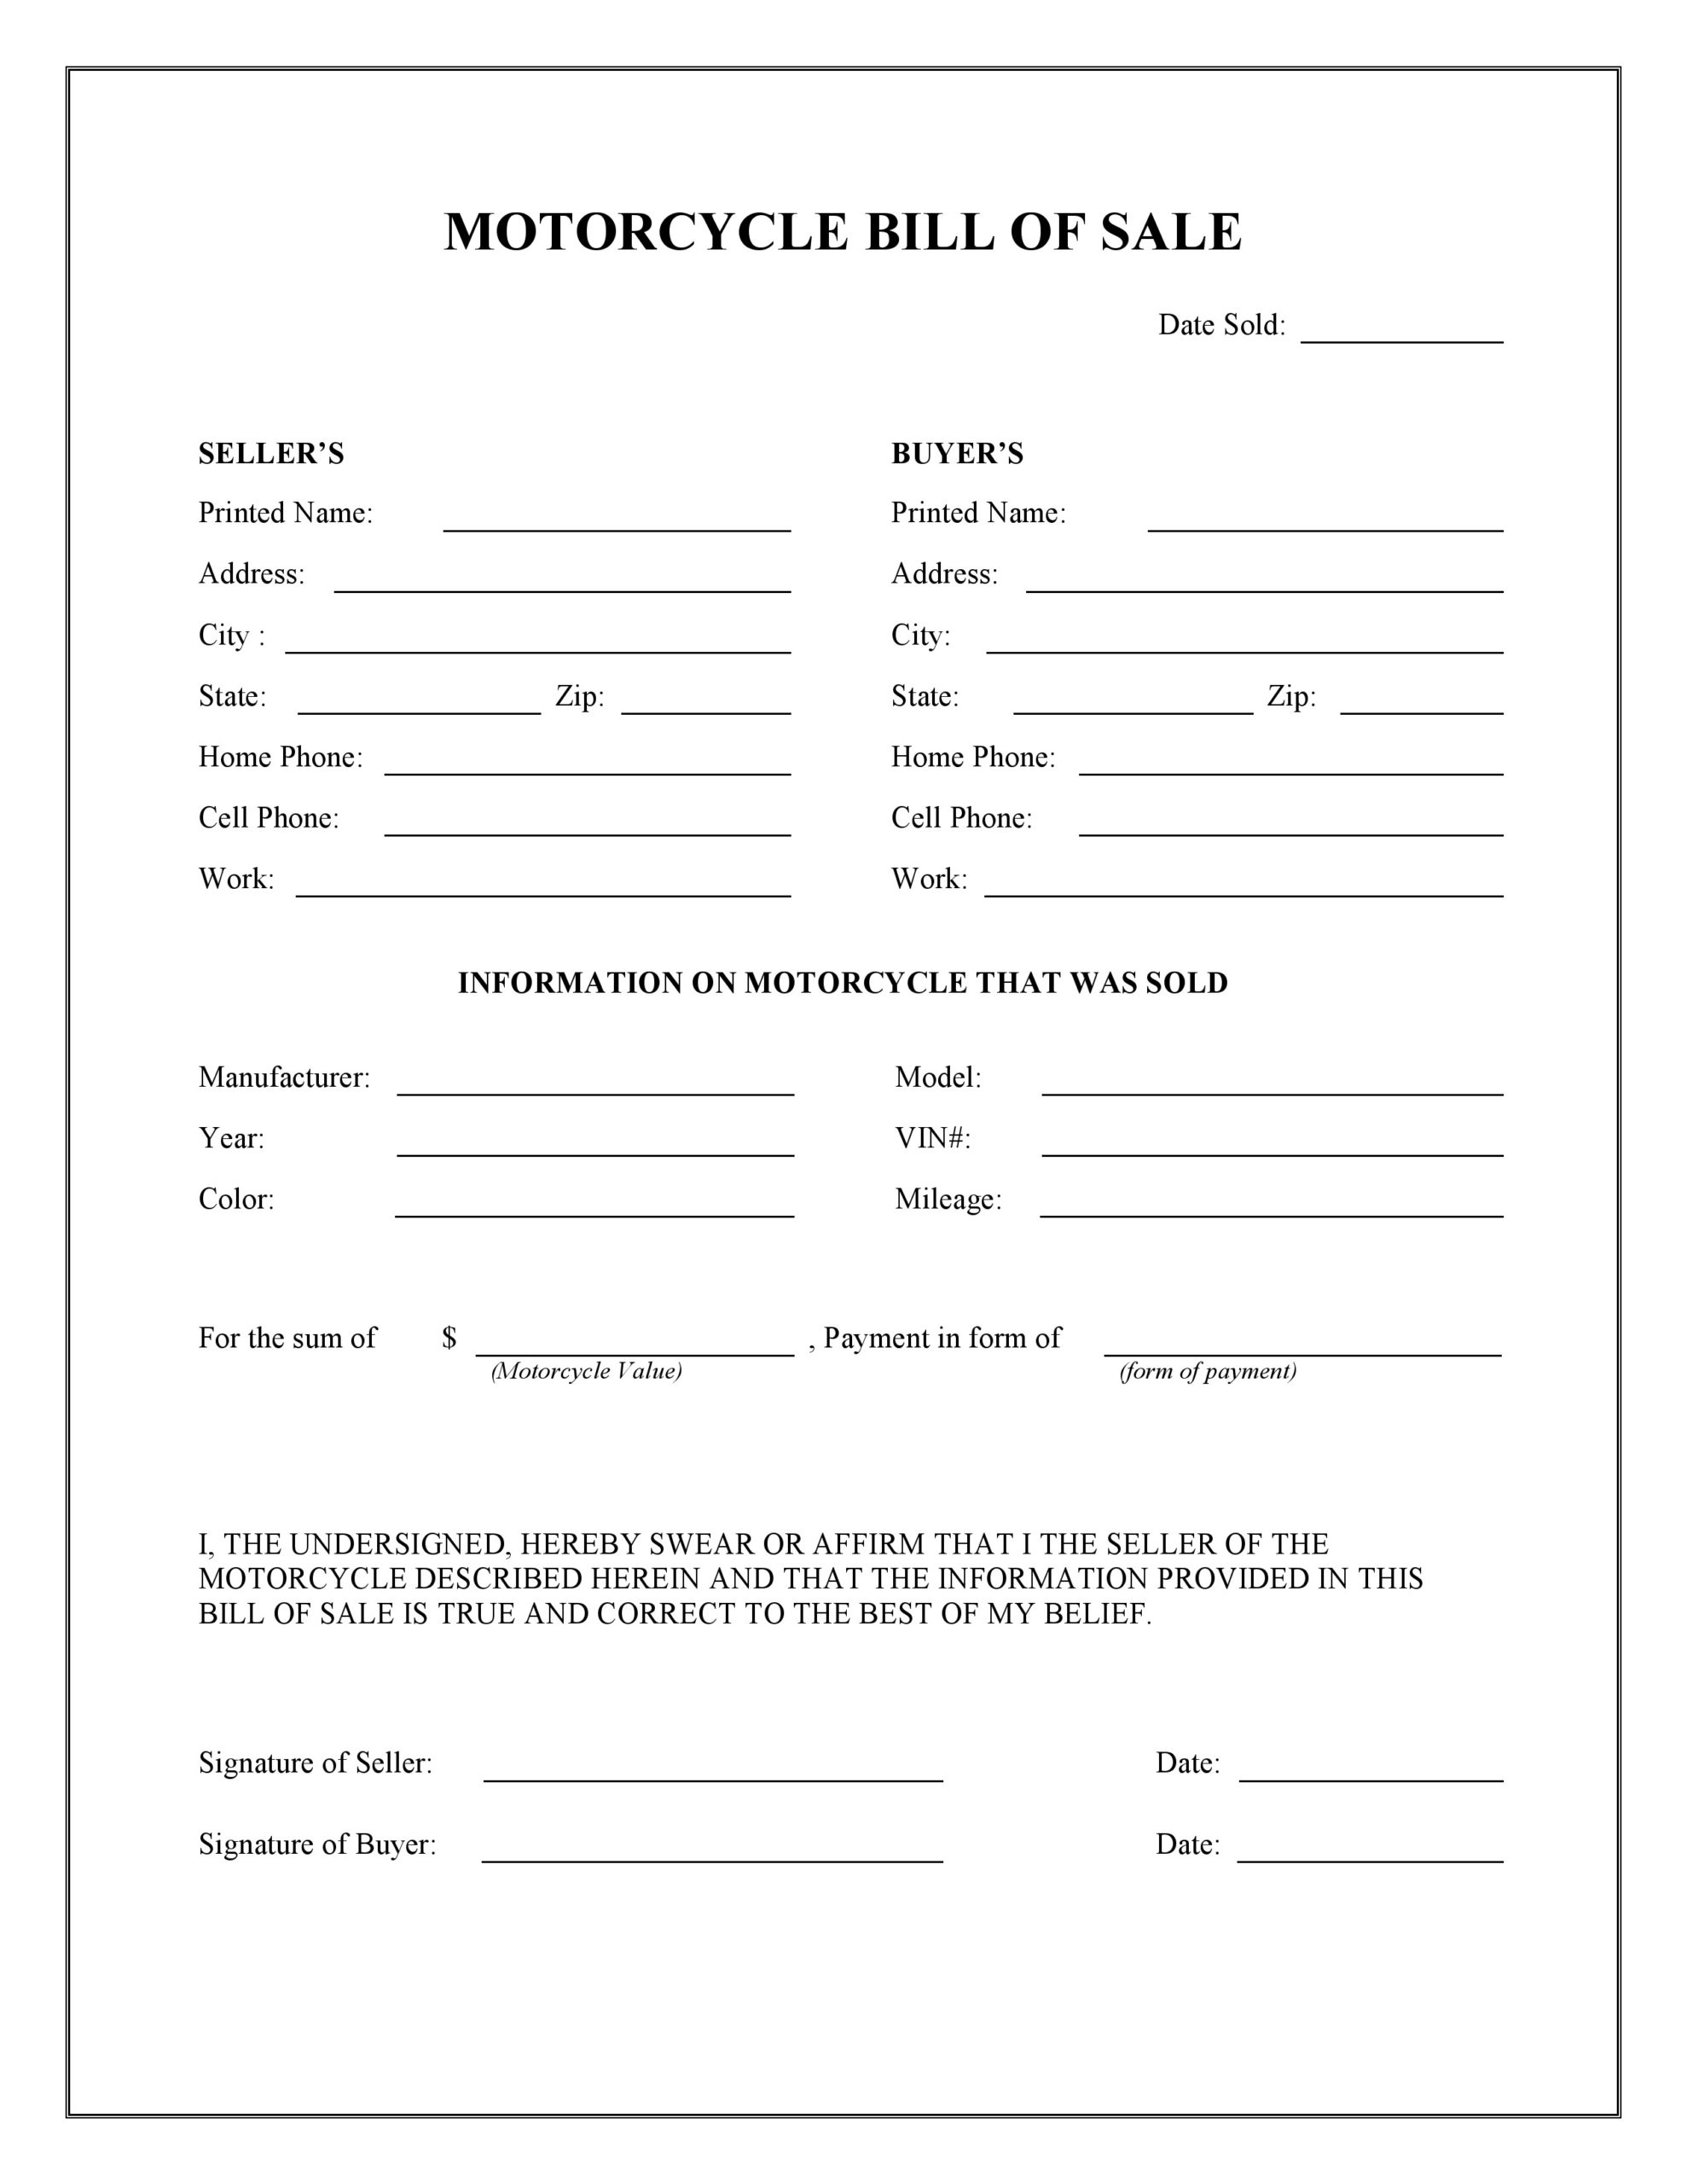 Free Motorcycle Bill Of Sale Form | Pdf | Word | Do It